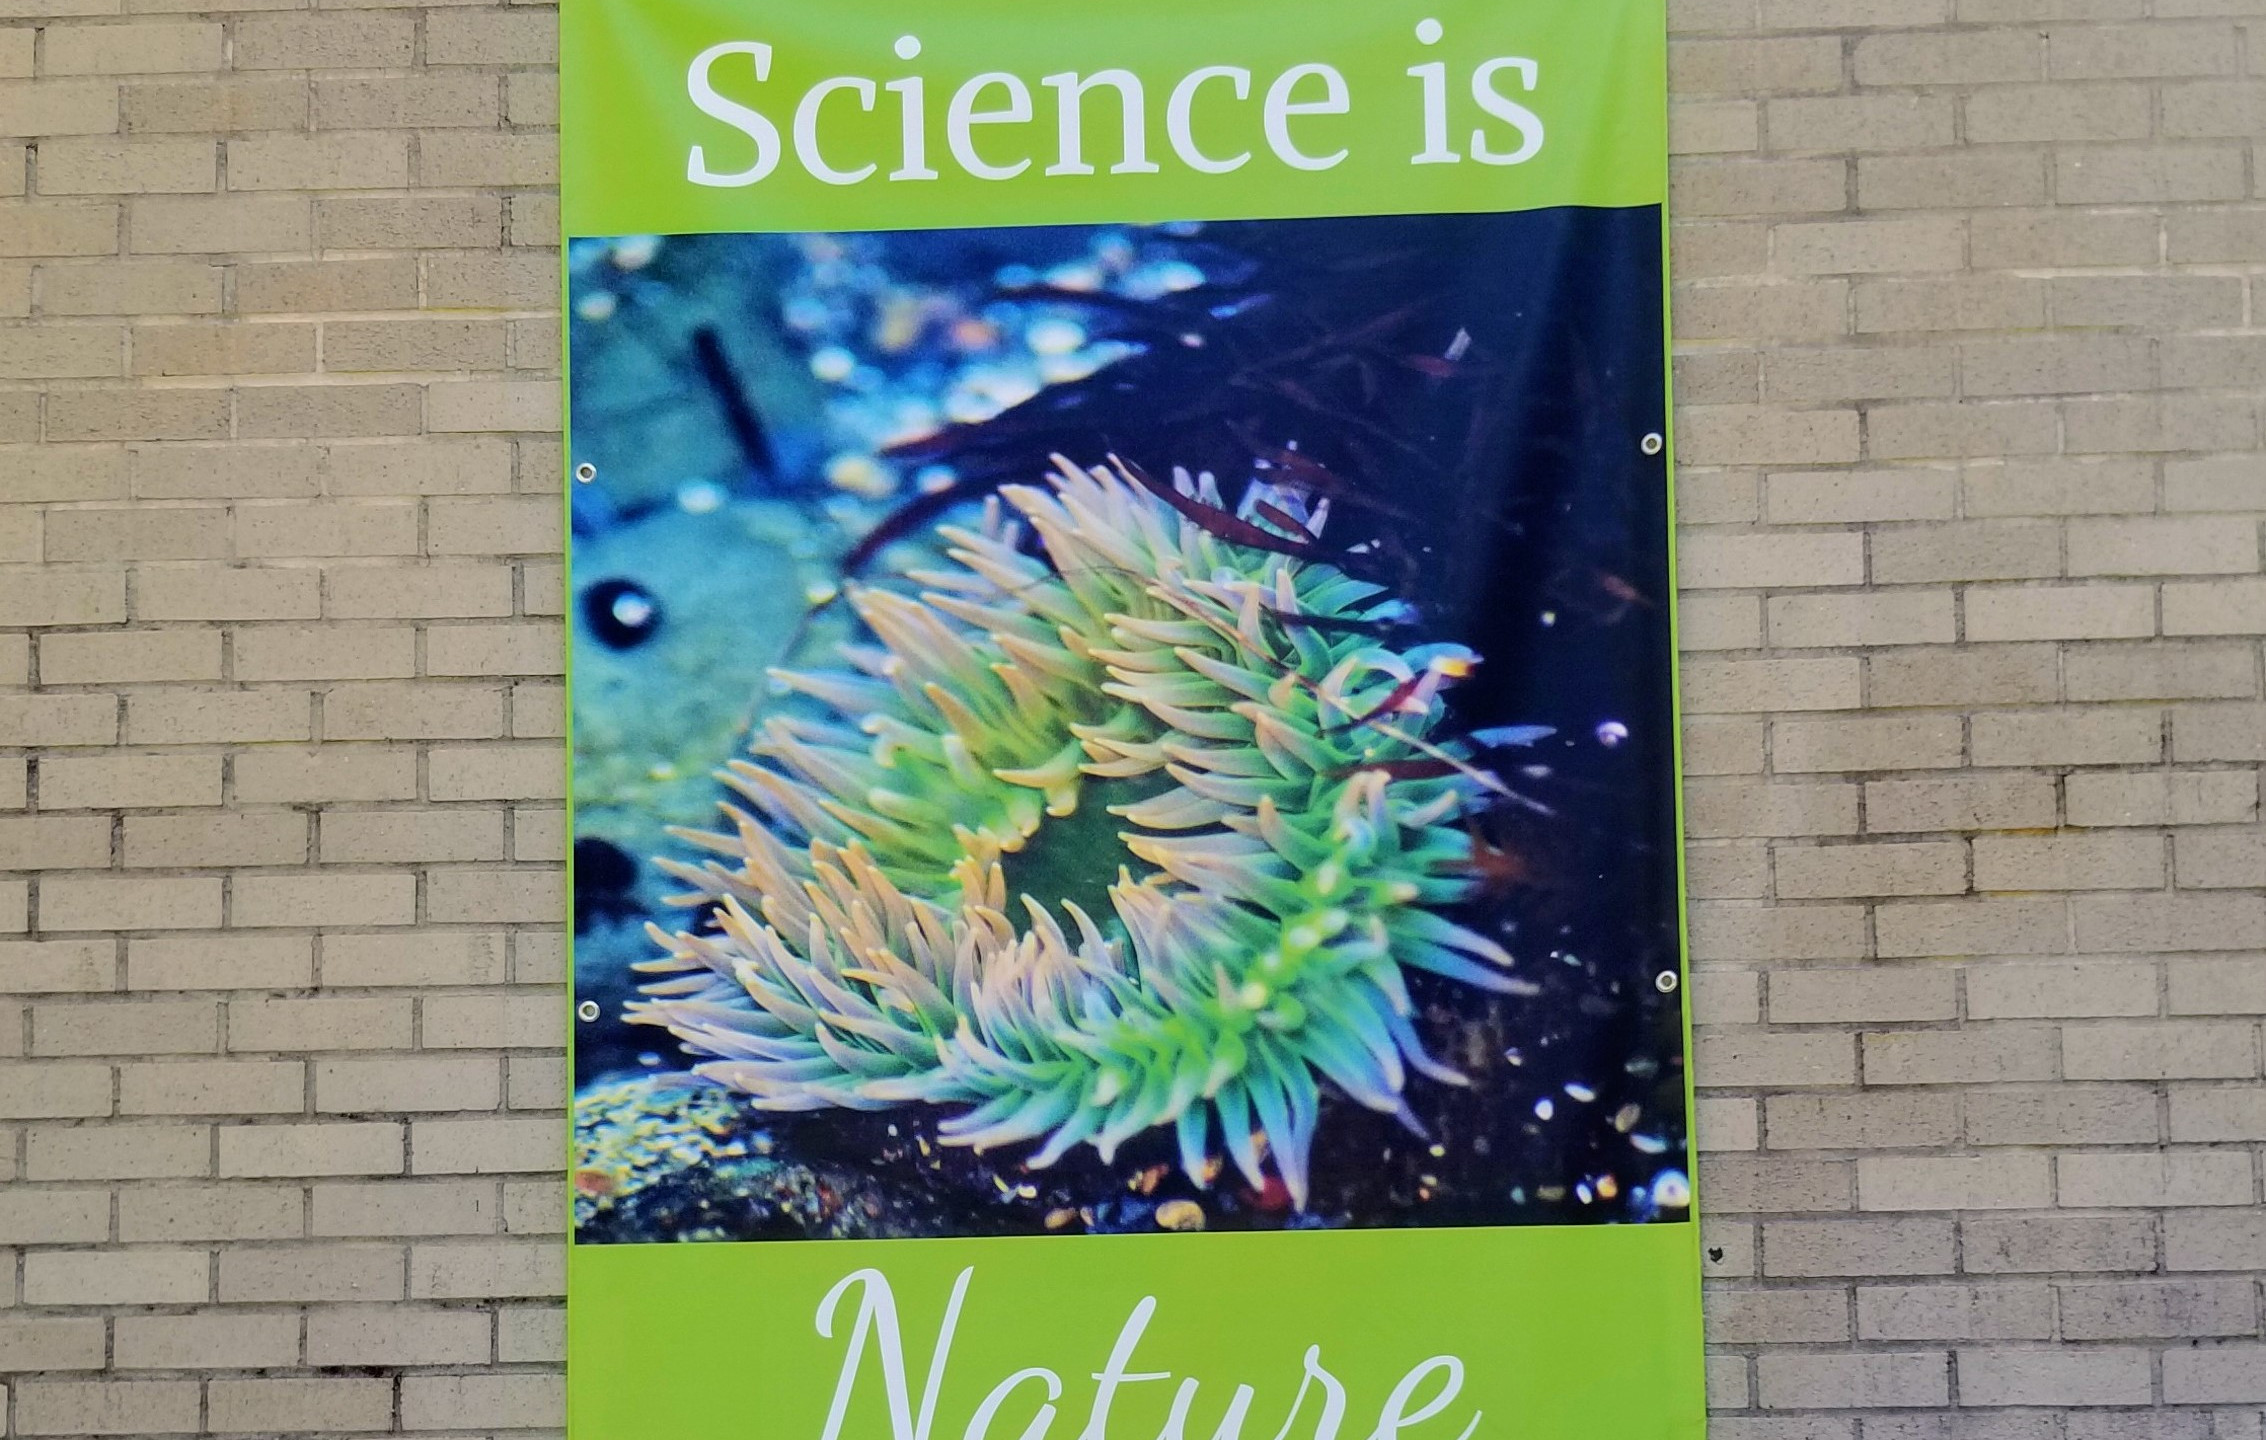 Science is nature.